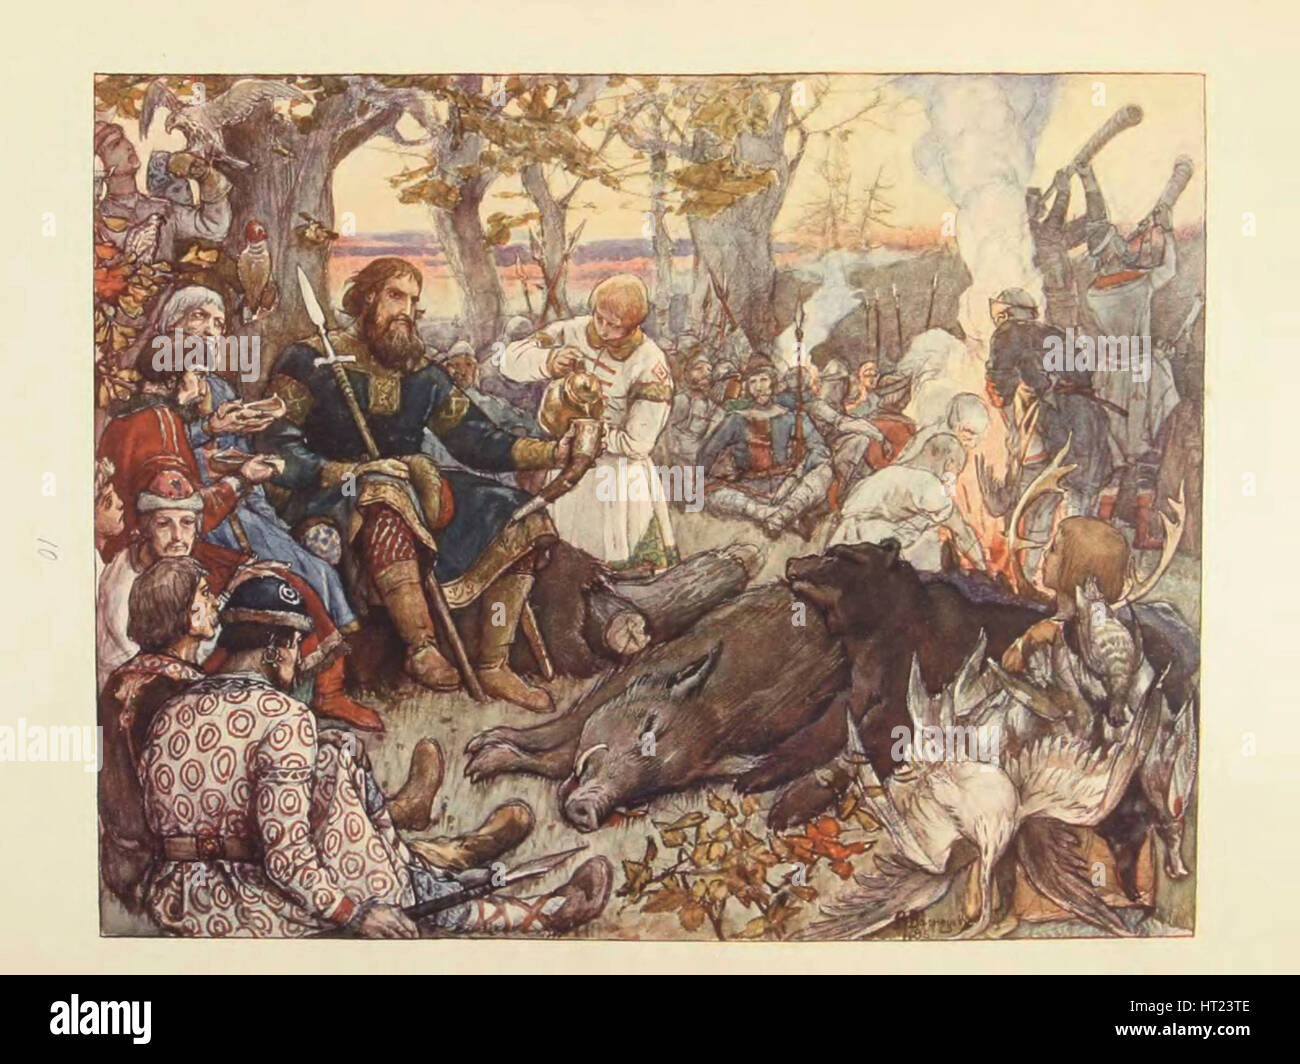 Rest of Grand Prince Vladimir II Monomakh on the Hunt. (The Imperial Hunt in Russia by N. Kutepov),  Artist: Vasnetsov, Stock Photo